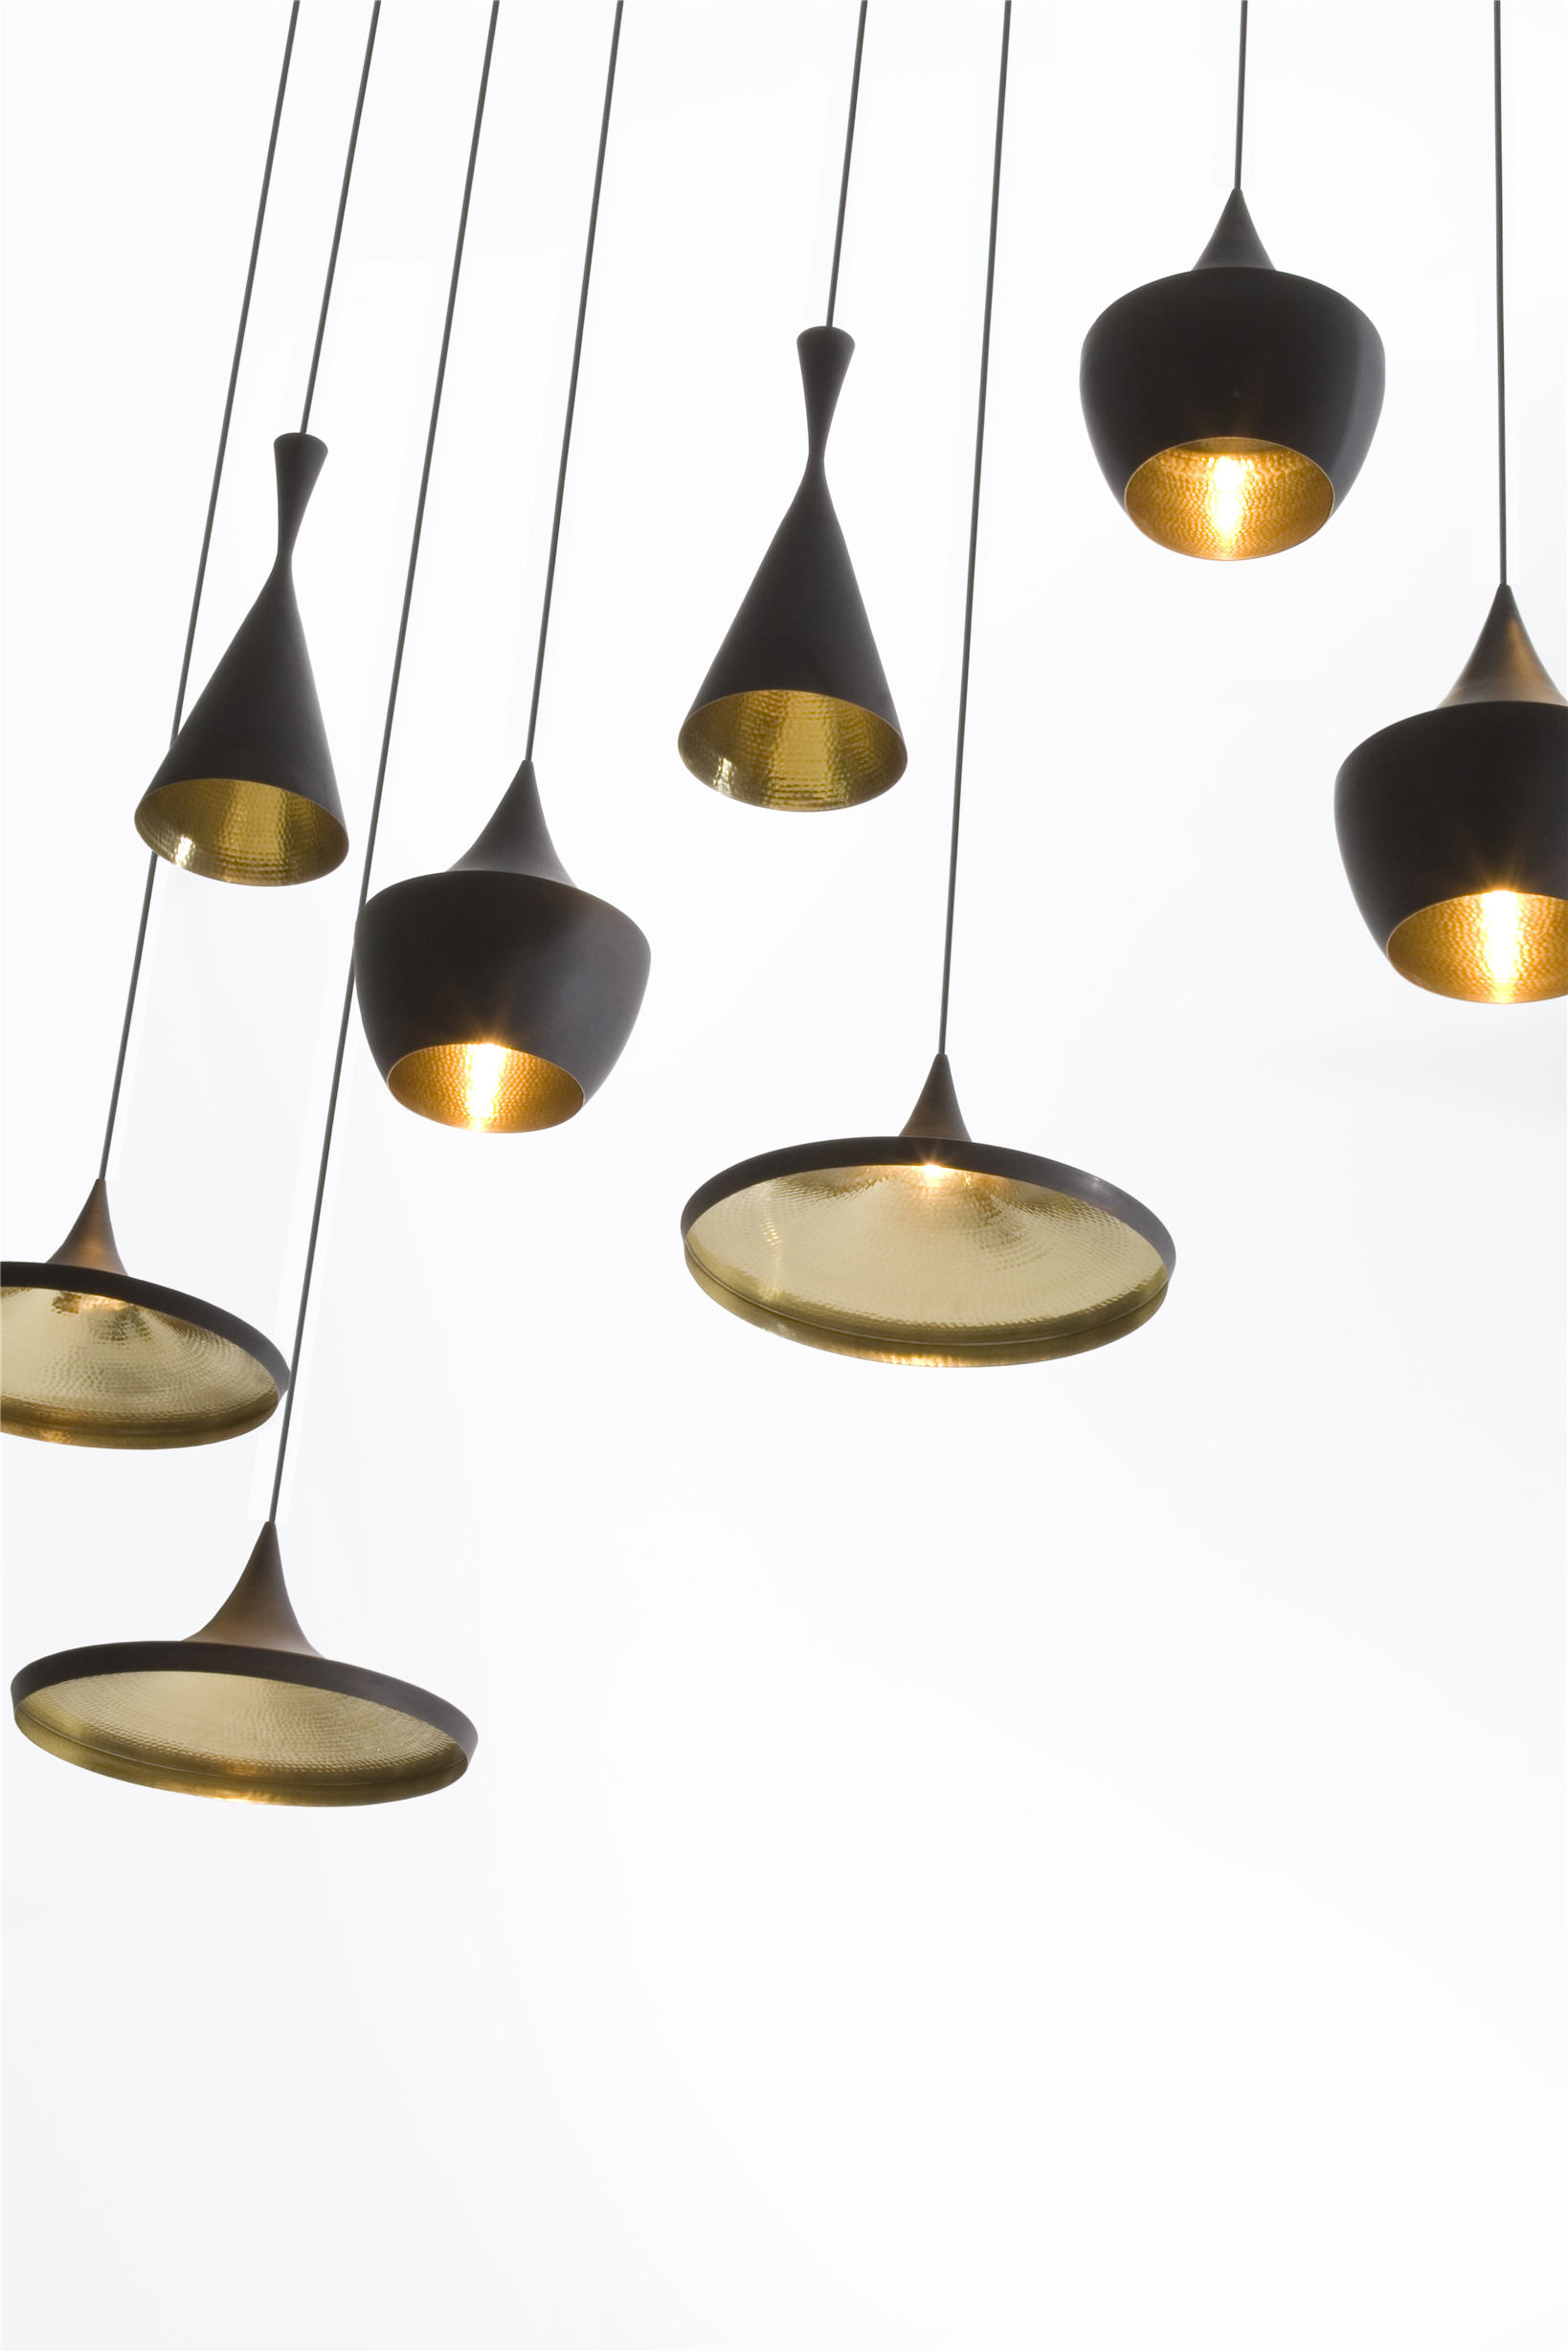 5 Iconic Designs You Need to Know  HuffPost